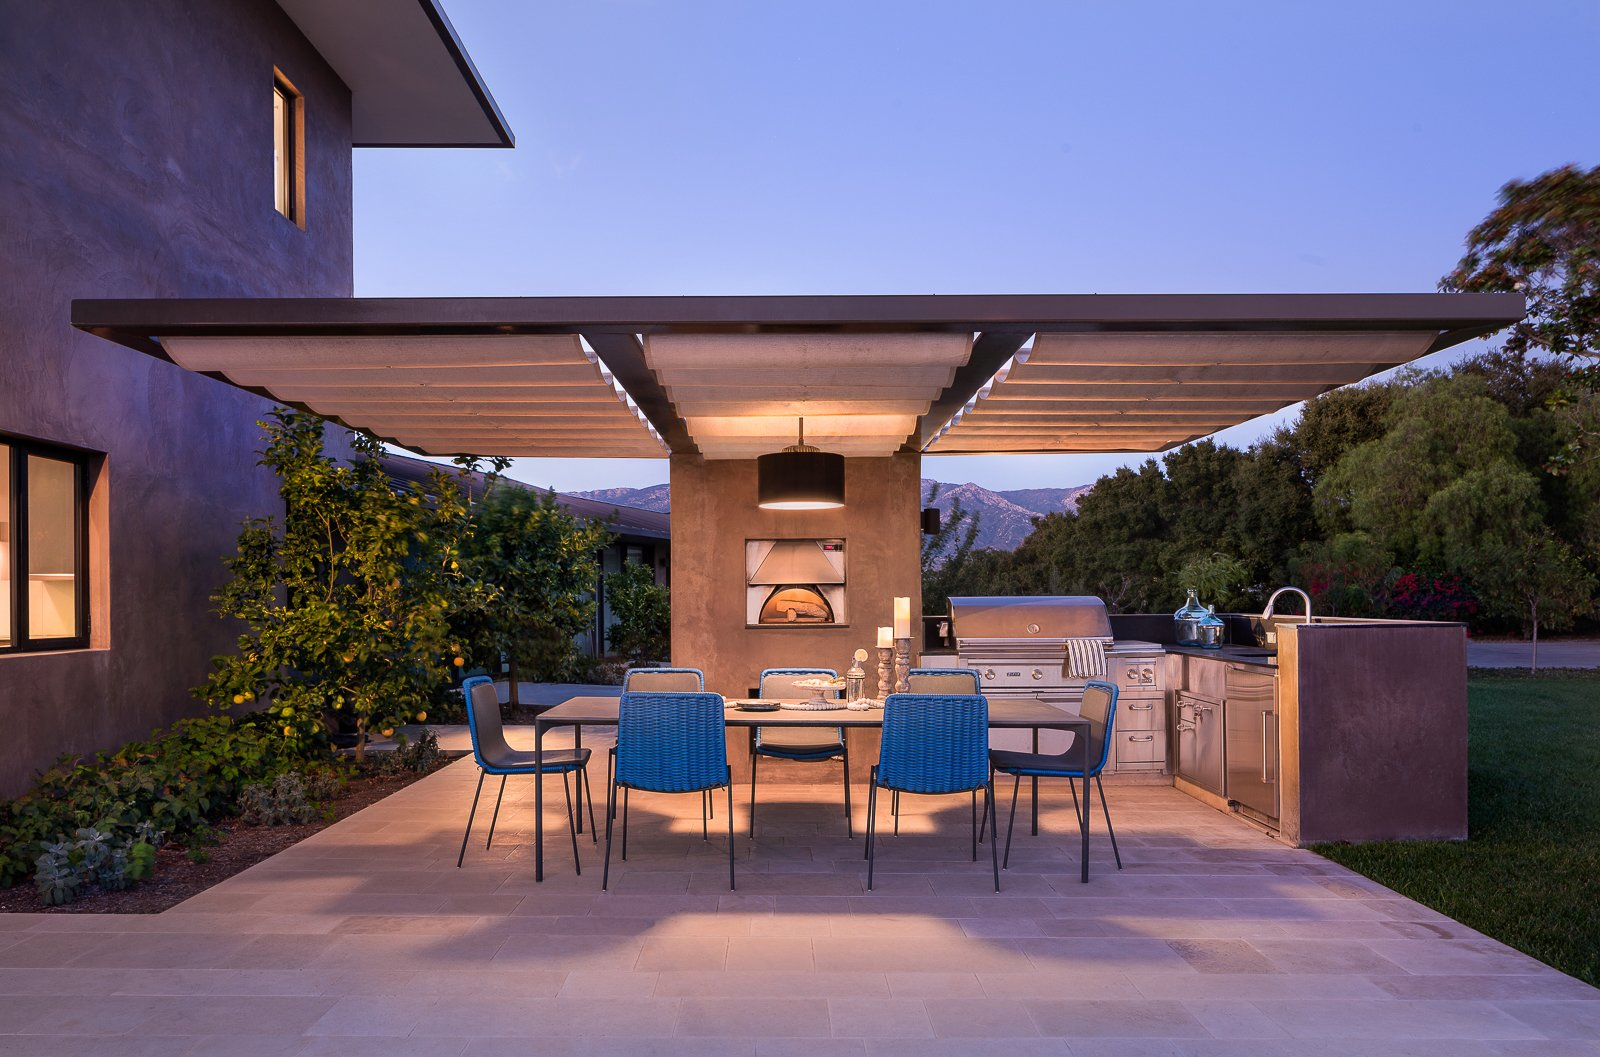 """Outdoor, Back Yard, Hardscapes, Concrete Patio, Porch, Deck, and Grass """"Designed to take advantage of expansive ocean, island, and mountain views, this contemporary remodel and addition recycled the original 1948 ranch house to create a new two-story home with an open plan layout,"""" says Blackbird Architects. The outdoor hardscape and garden include a reflection koi pond and palm island at the entry, green roofs, an outdoor kitchen, a pizza oven, and a fire pit.  Hope Ranch Residence by Blackbird Architects"""